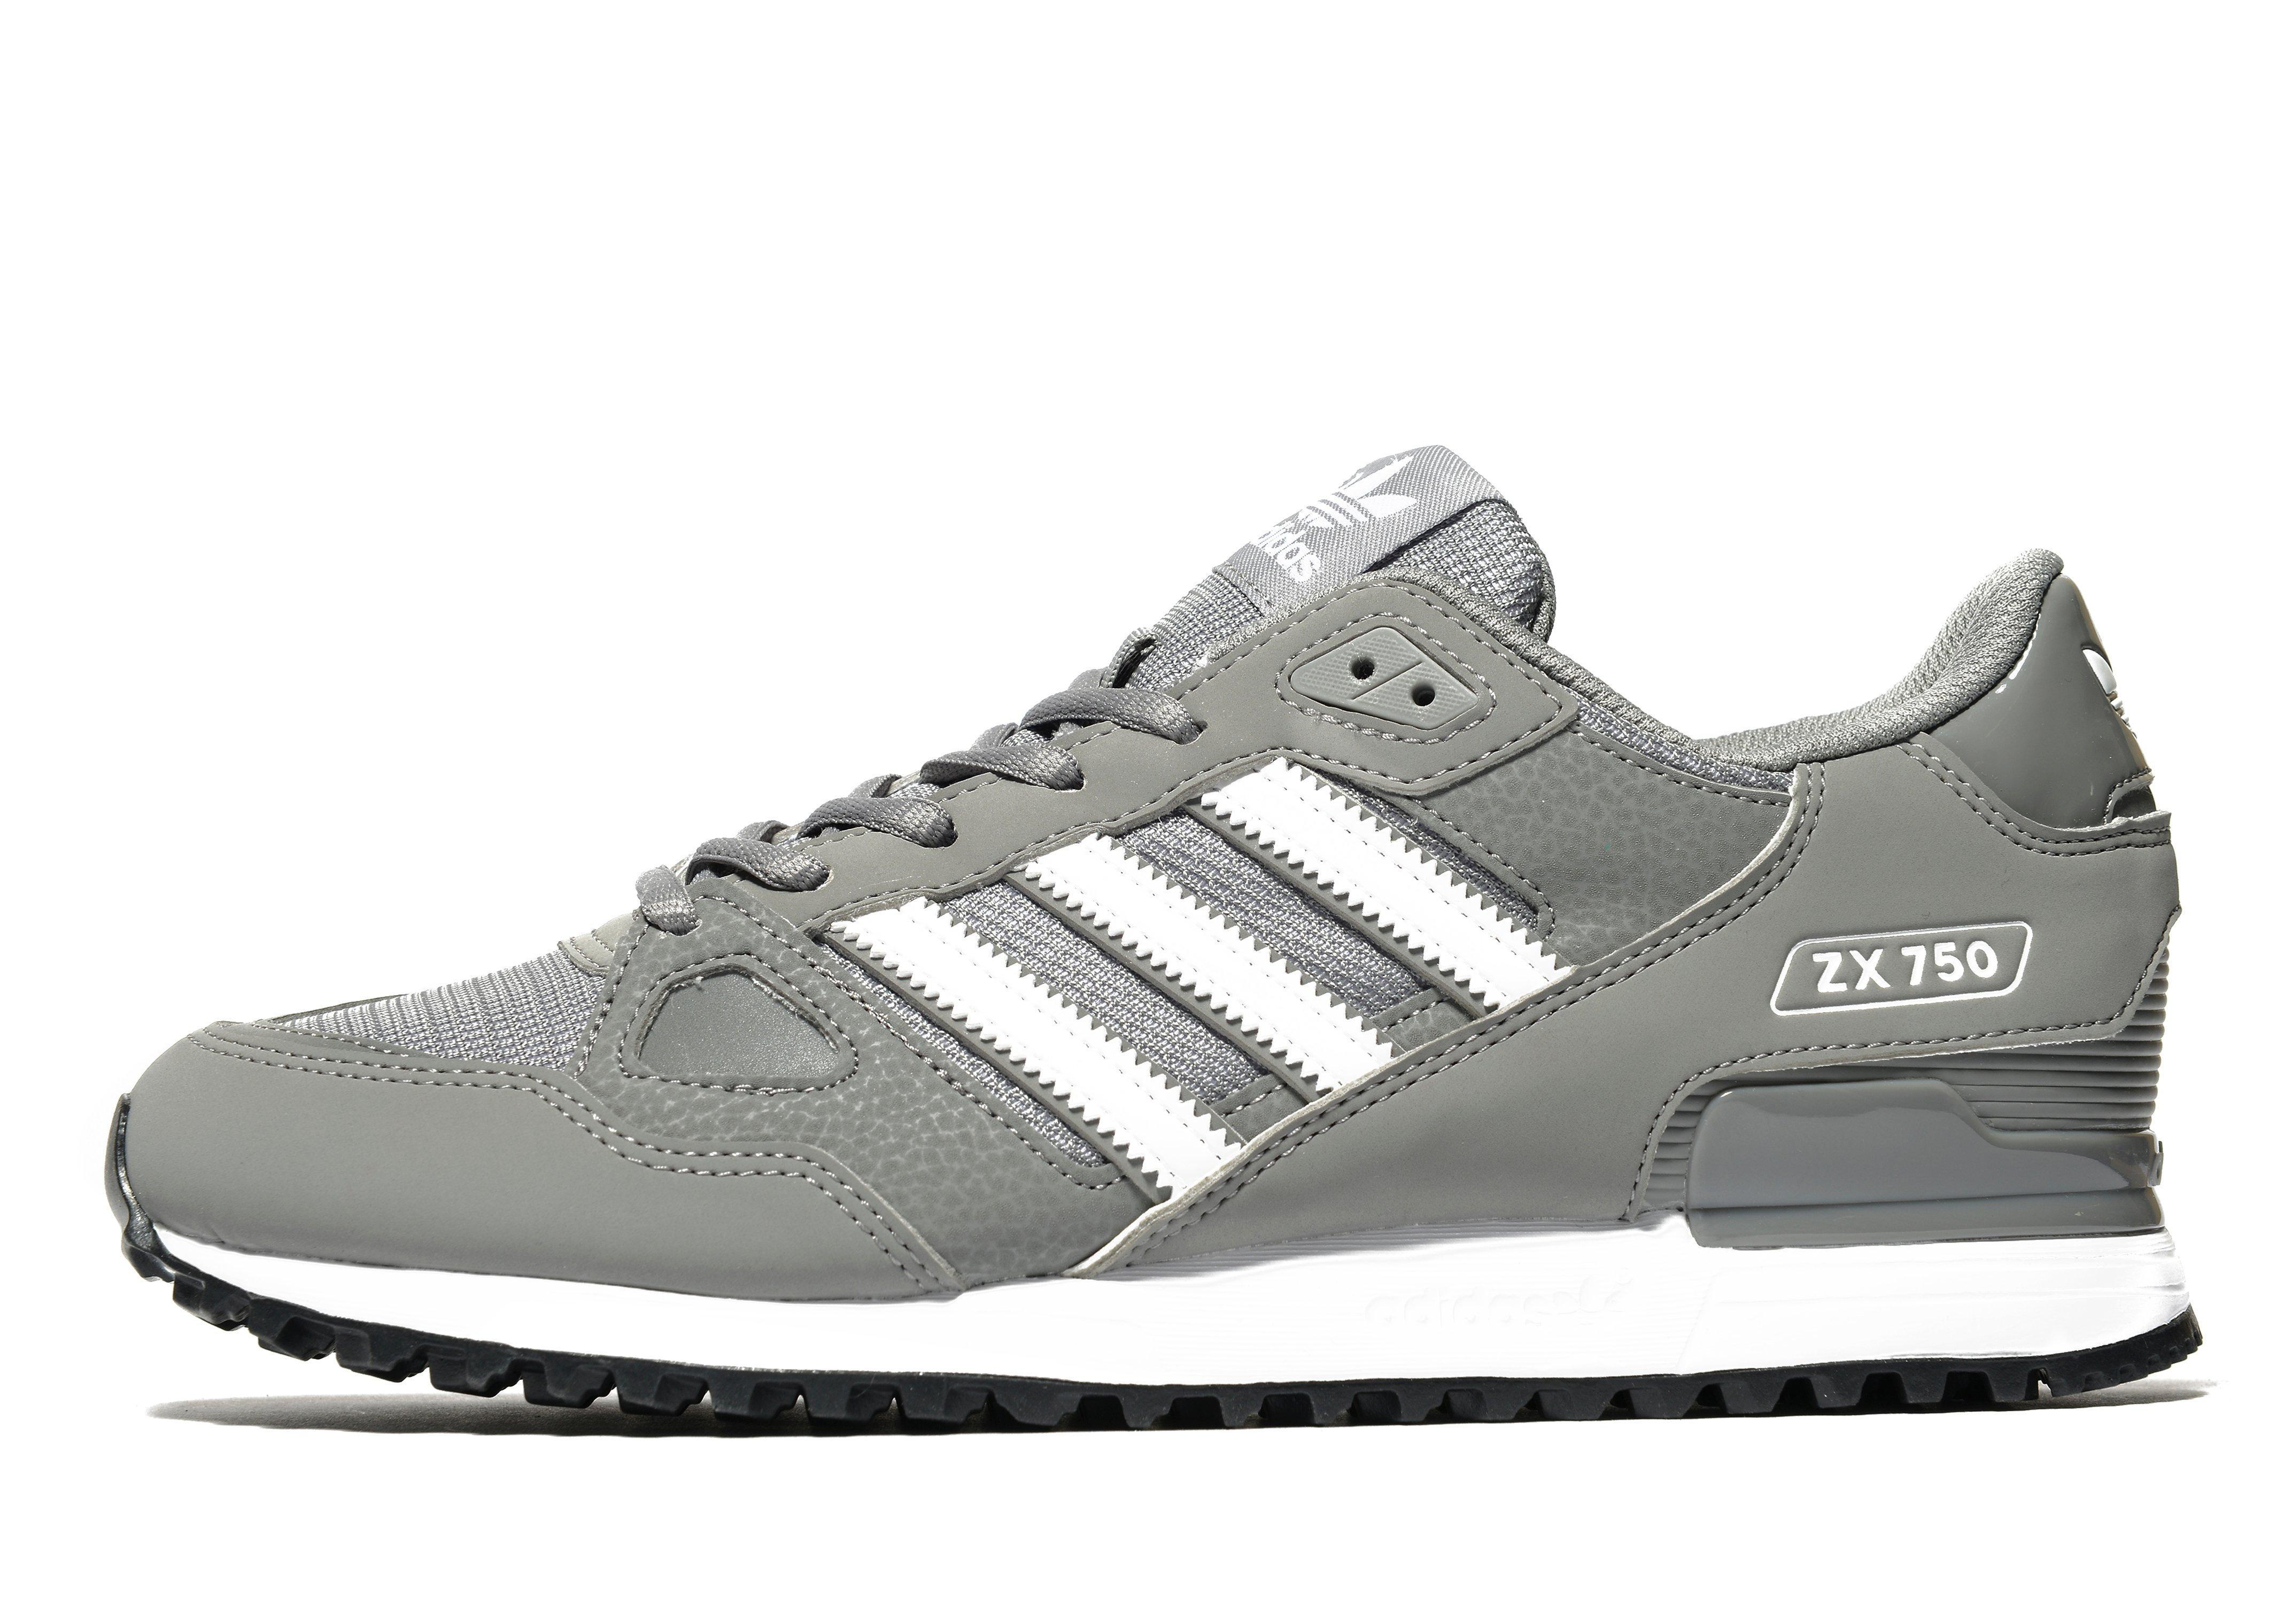 info for c2e33 5ef41 Adidas Originals Zx 750 in Gray for Men - Lyst